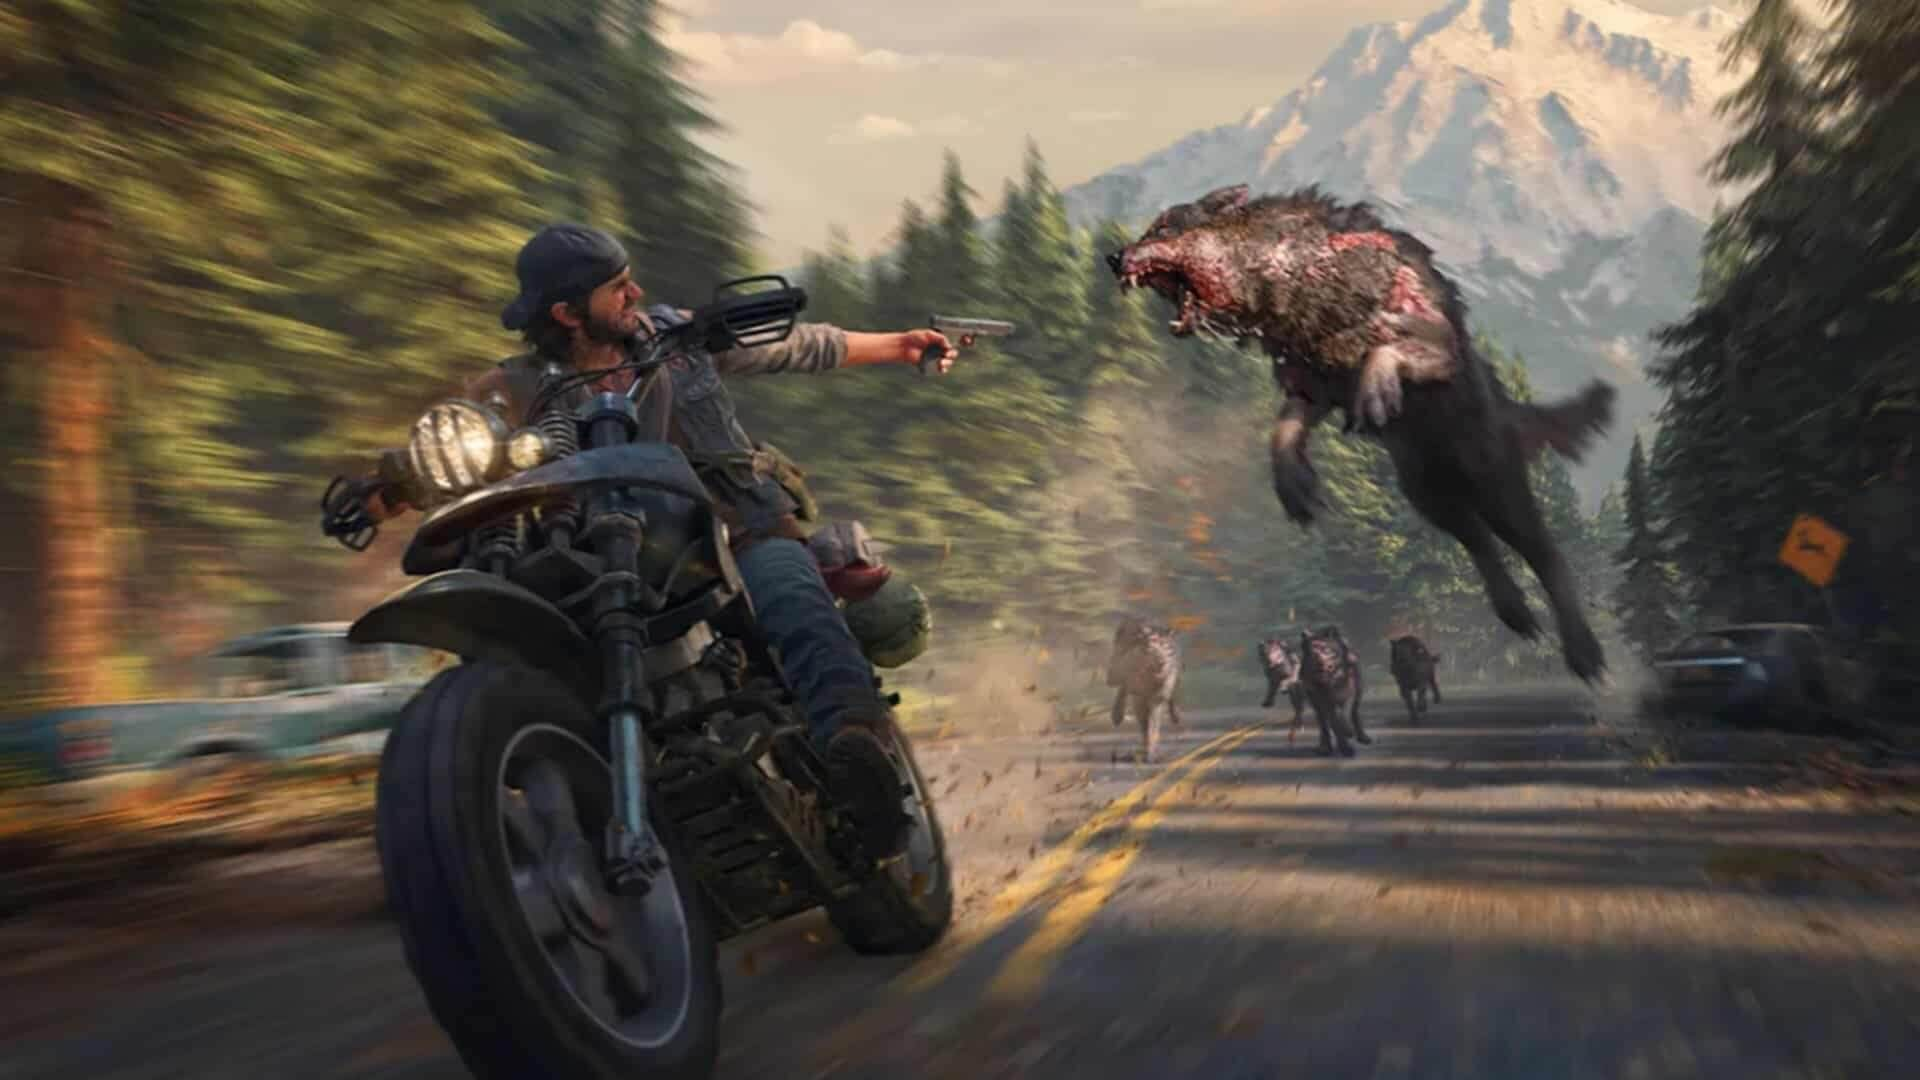 Sony Rejects Days Gone Sequel, Bend Studio Shifts to New Project